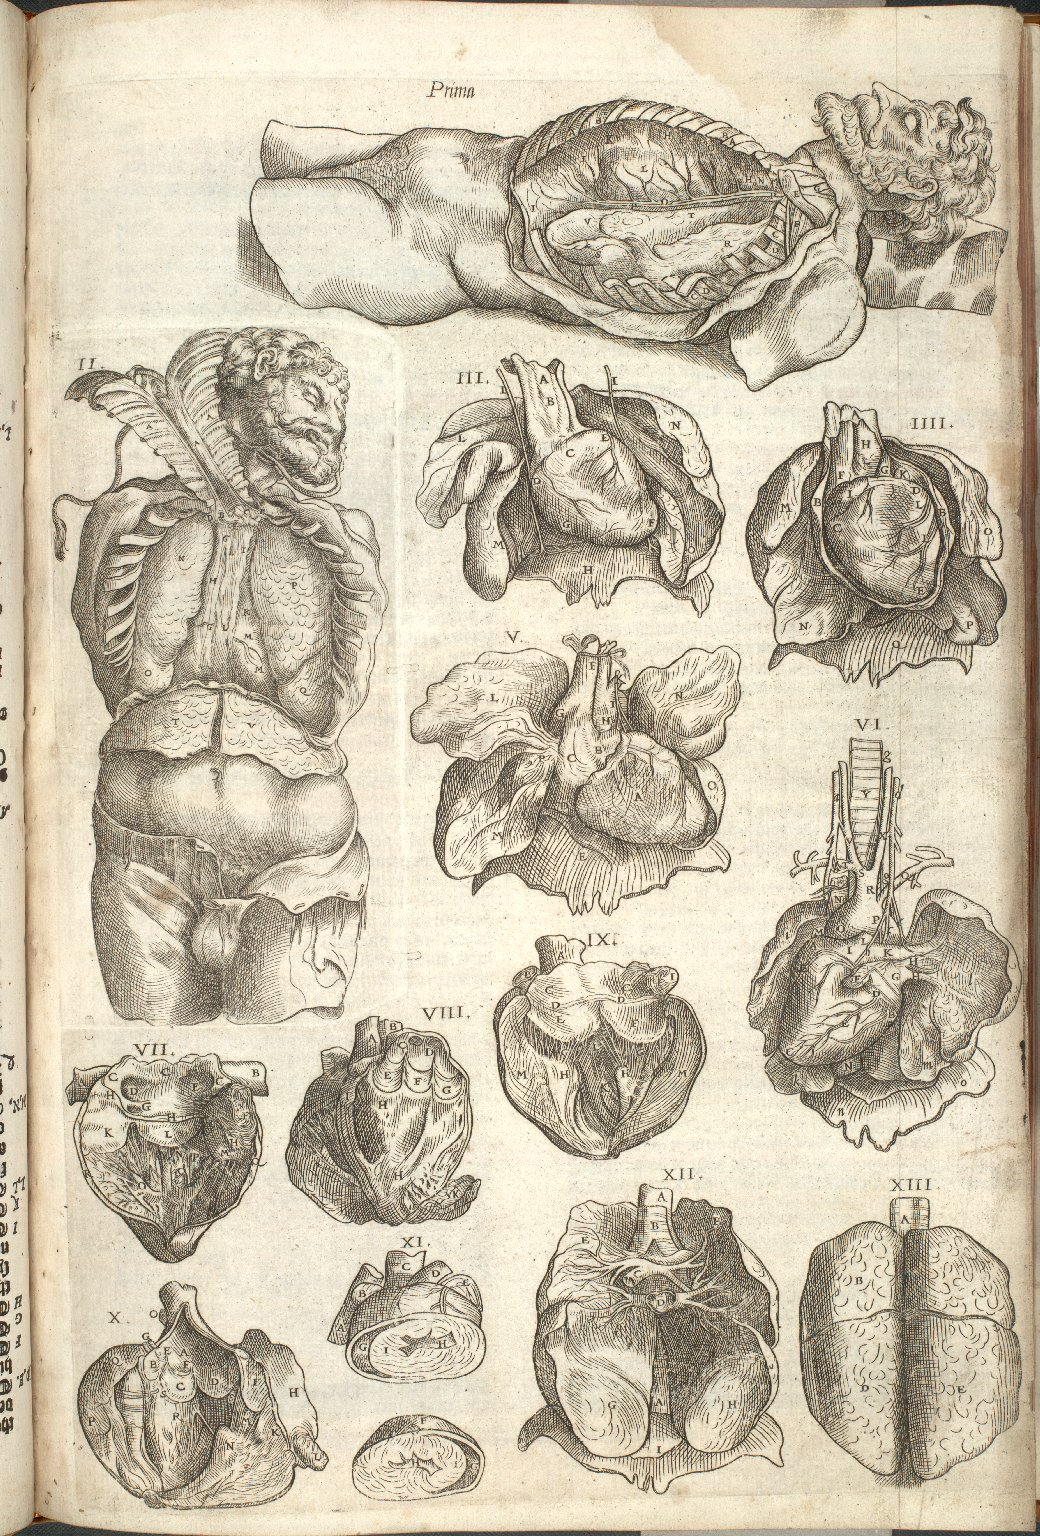 Prima, et.al. (Plates of the Organs of the Heart)